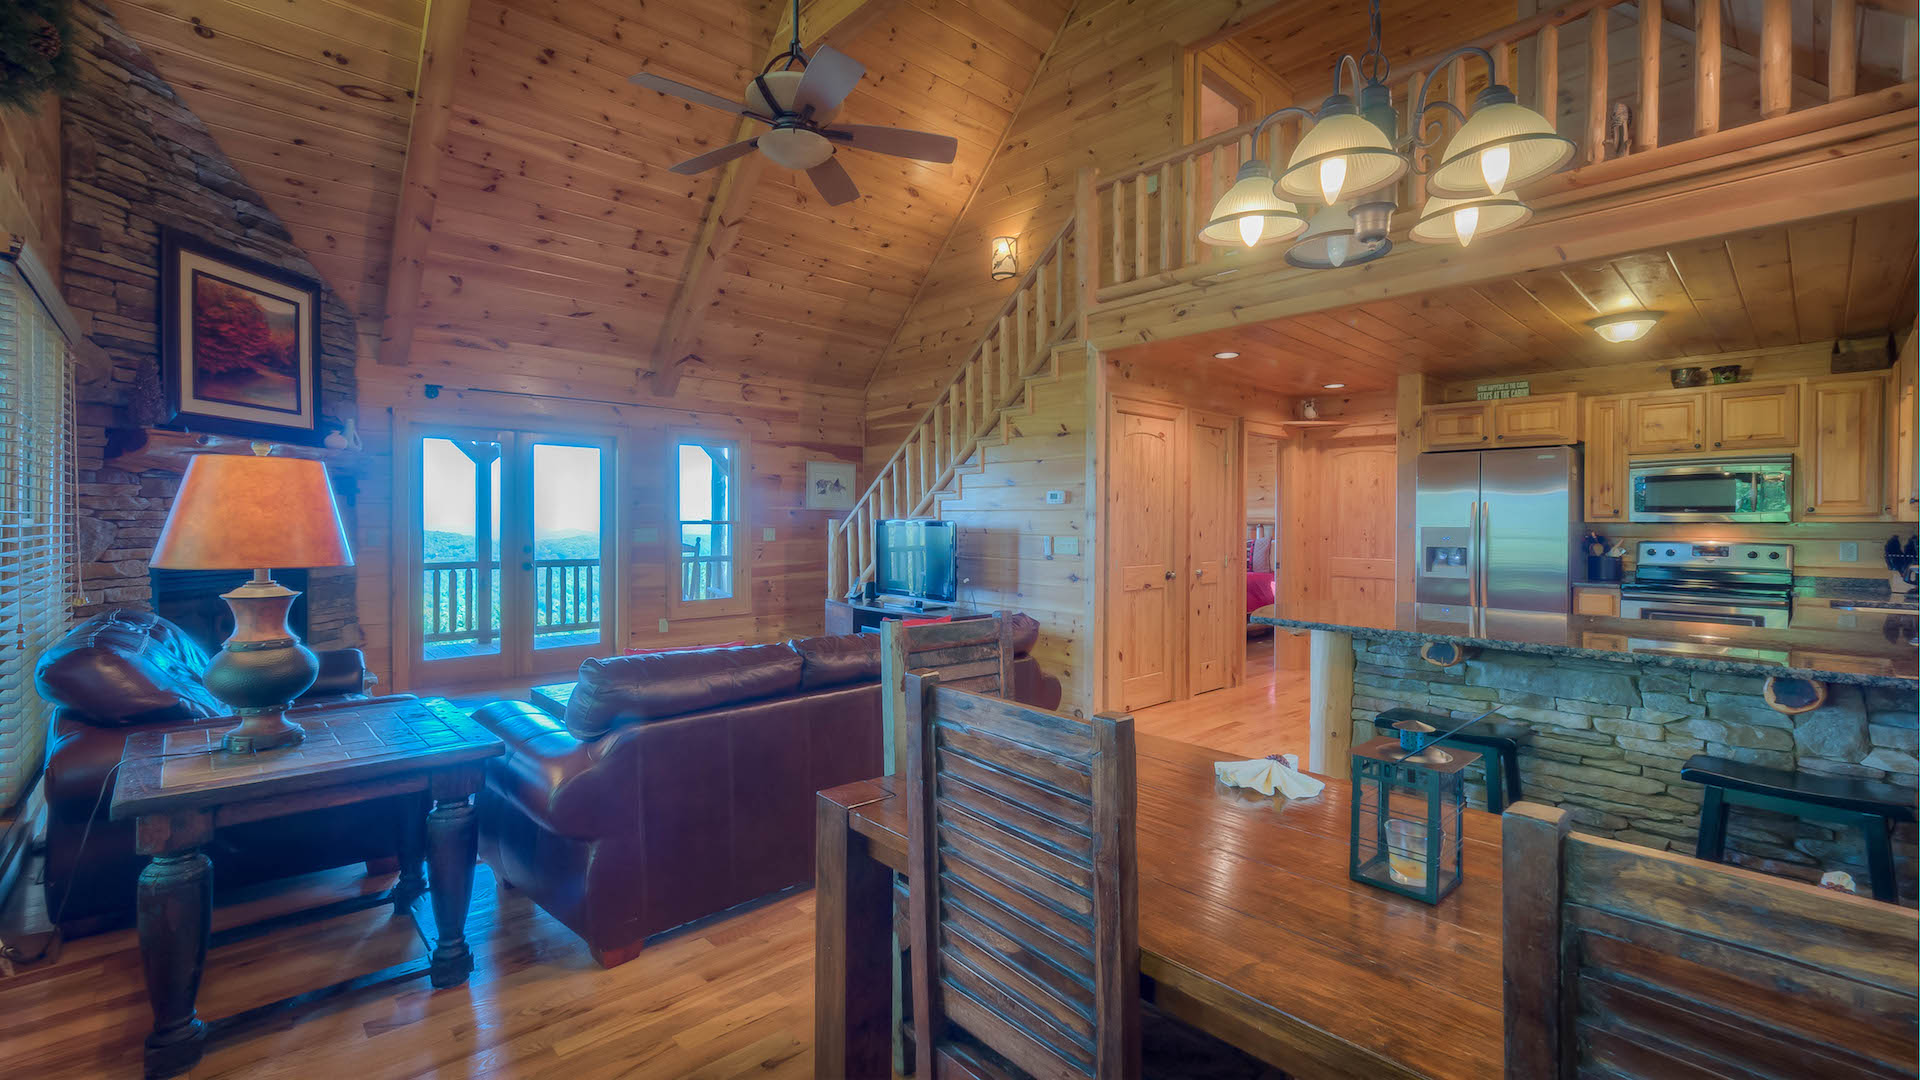 of georgia pro detailcabin timber in cabins smallertimber cabin ga blue rentals lodge rental ridge